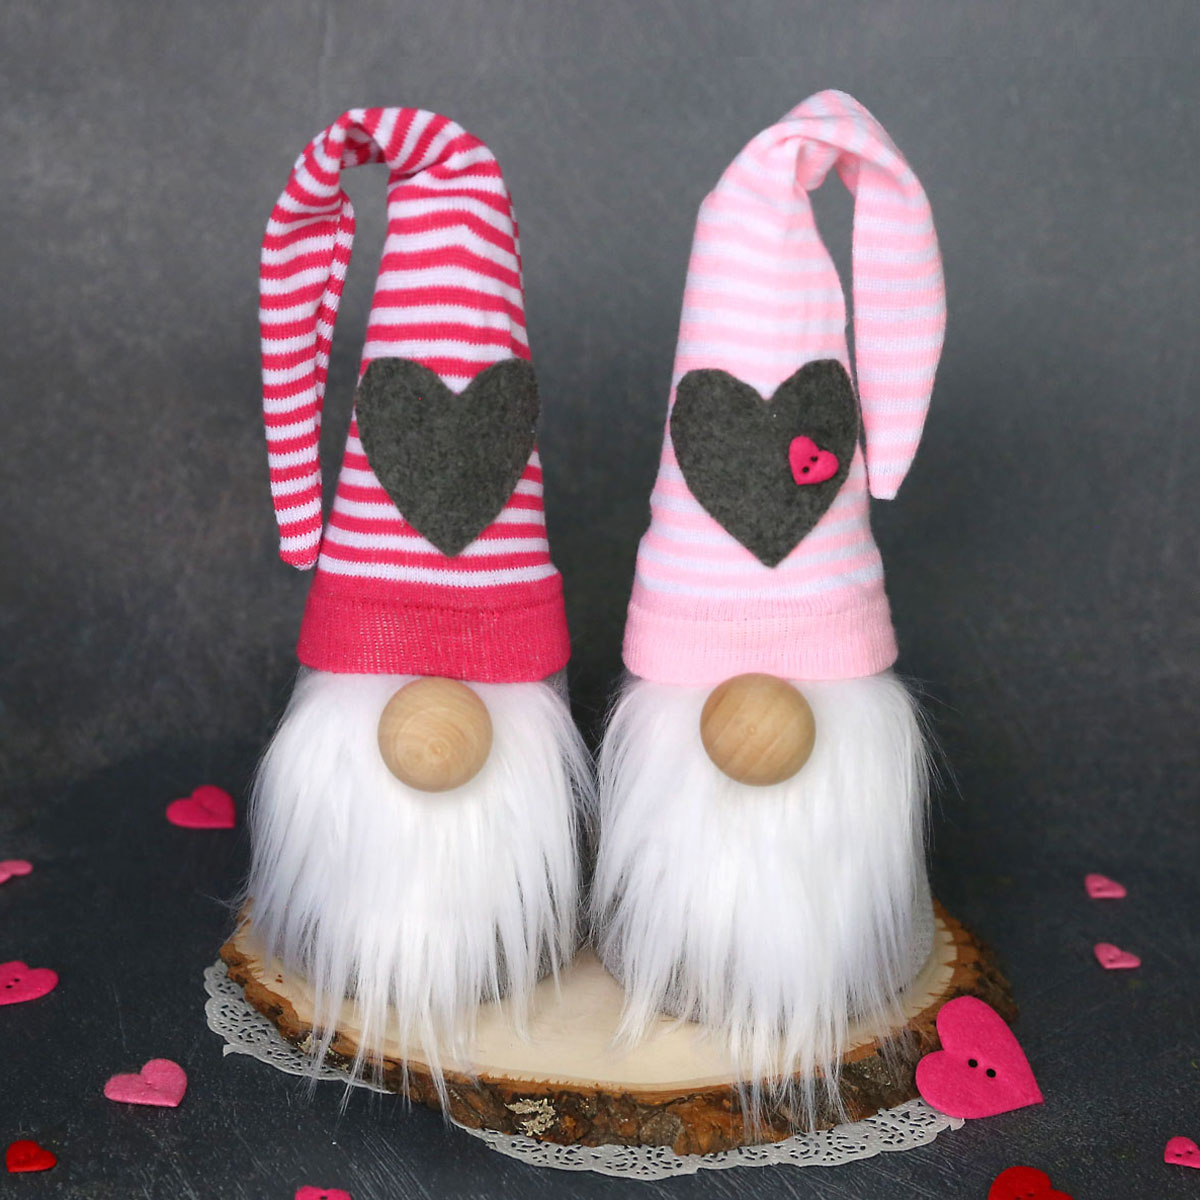 Two sock gnomes with pink striped hats with hearts on them for Valentine\'s Day